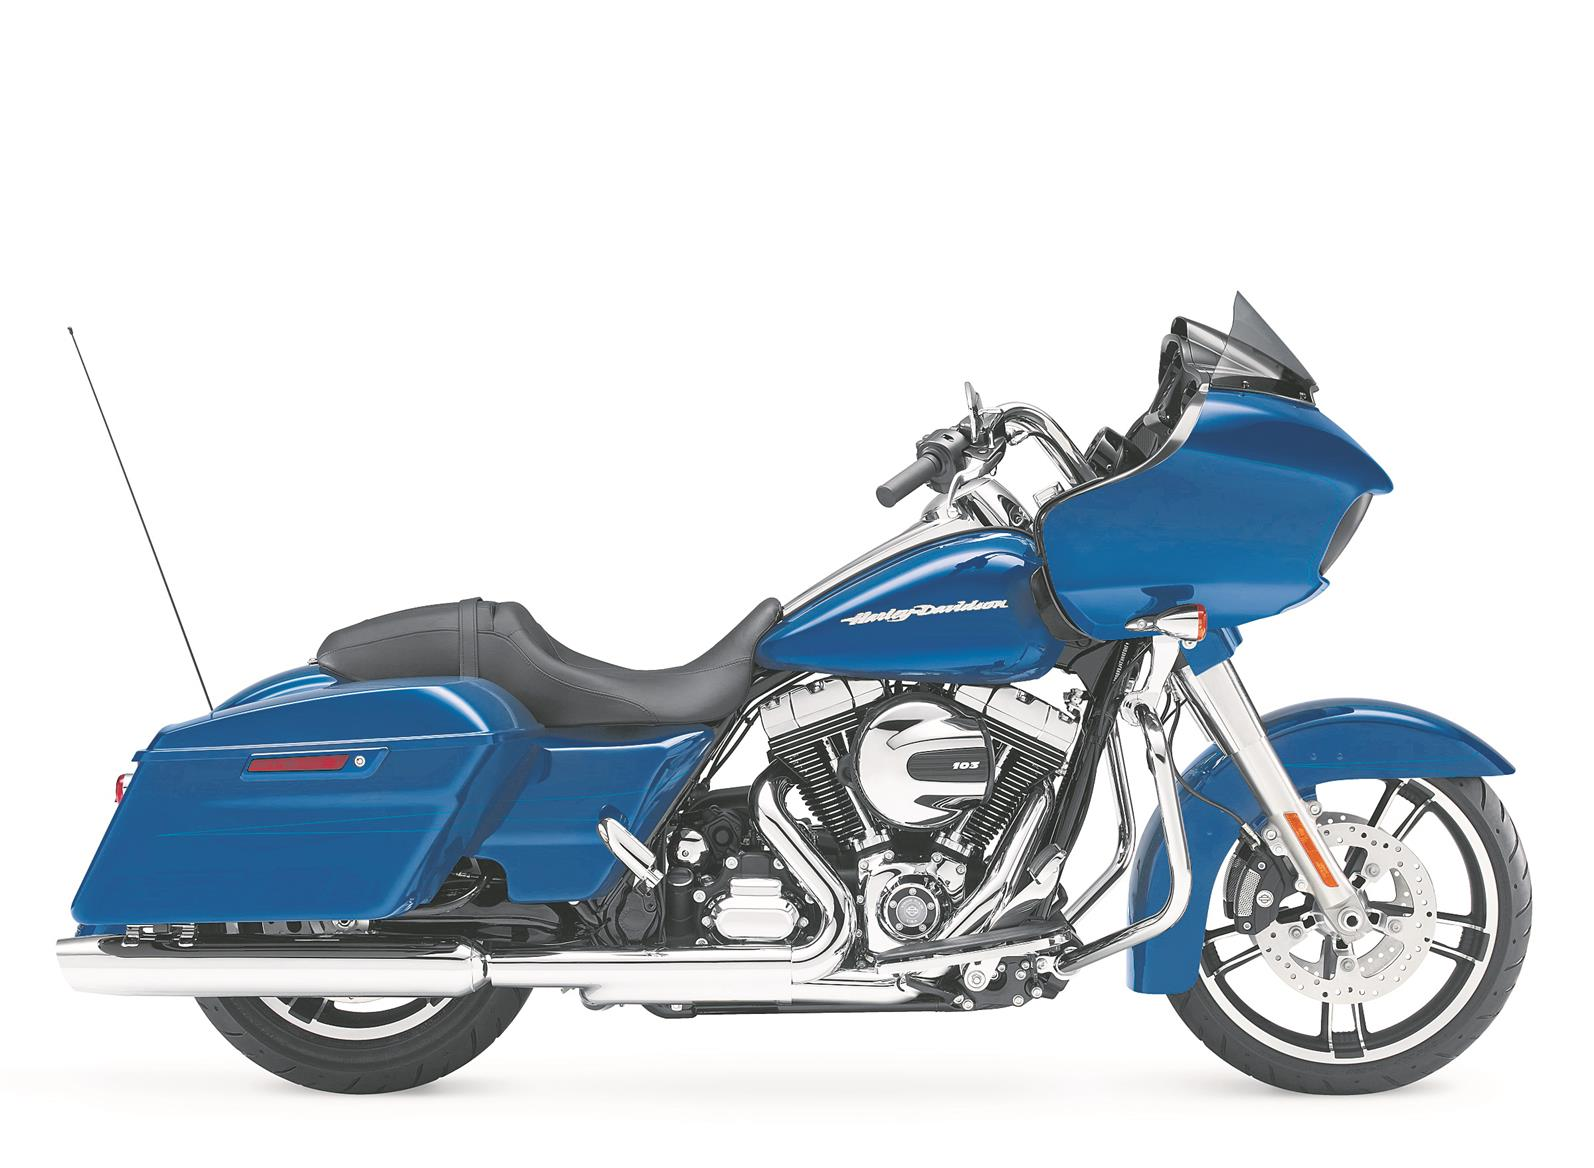 HARLEY-DAVIDSON ROAD GLIDE SPECIAL (2015-on) Review | MCN